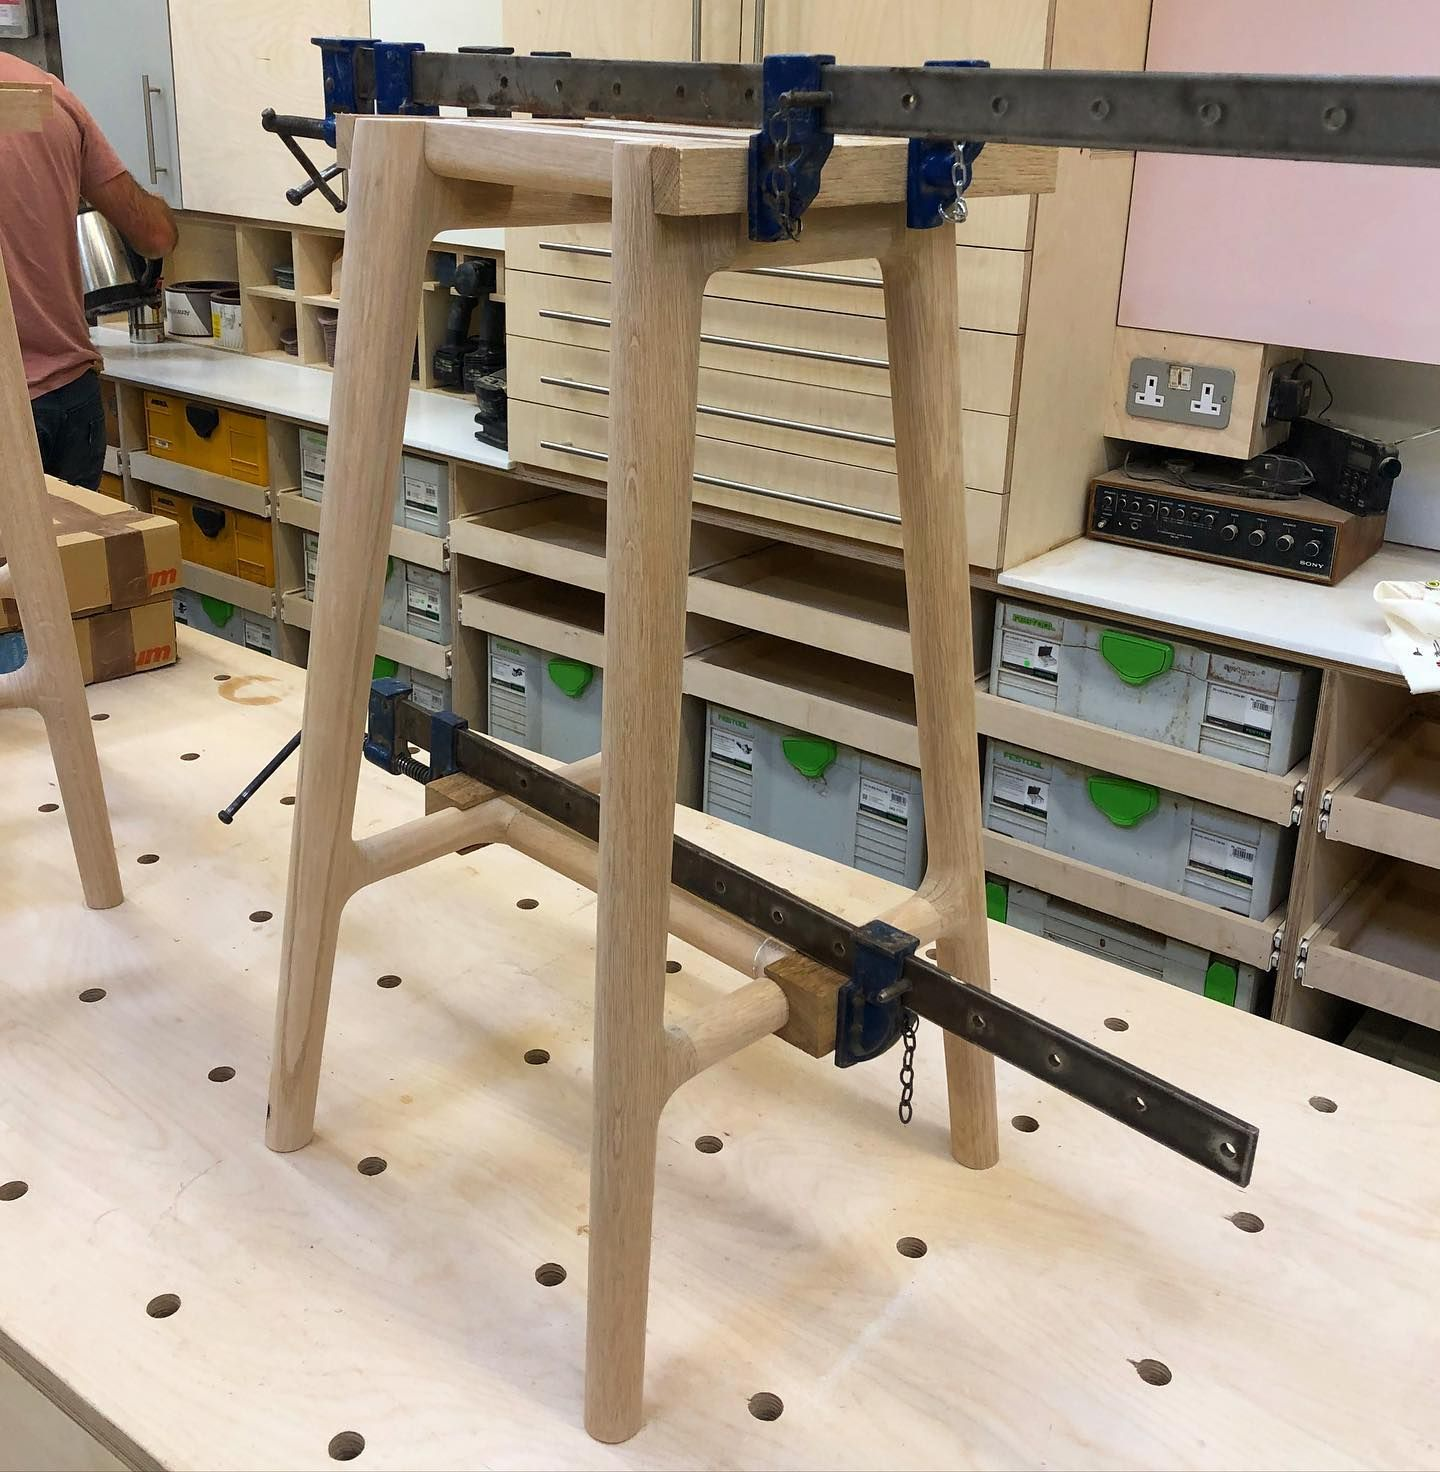 First of these bases glued up they are starting to look like stools! Now just the tops to make and they should be ready for delivery. #handmade #oak #furnitire #furnituremaker #designermaker #makersofinstagram #makersmovement #makersgonnamake #seating #howitsmade #howitsdone #howitsmadematters #woodworking #workshop #onthebench